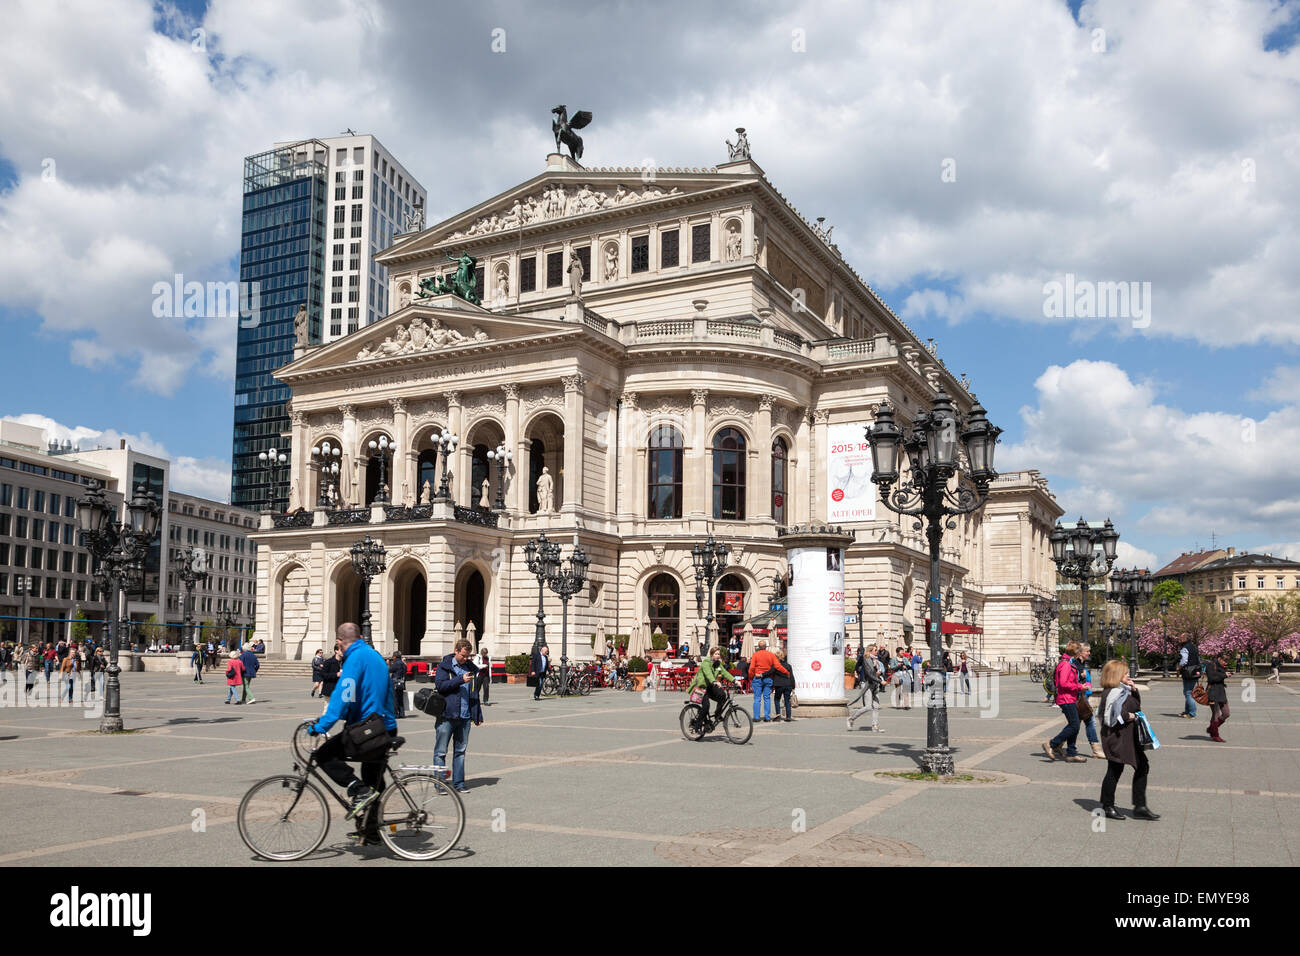 The Alte Oper - a concert hall and former opera house in Frankfurt am Main, Germany - Stock Image